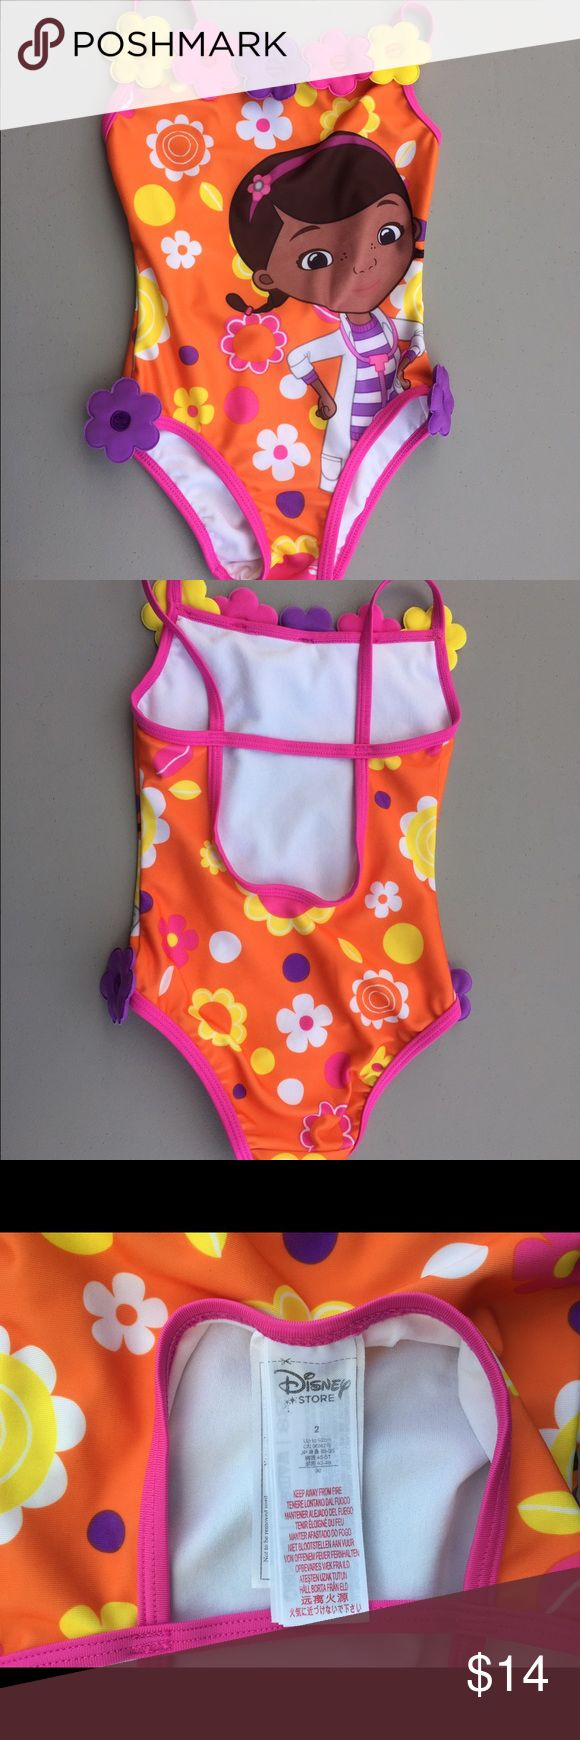 Doc McStuffins Swimsuit & Cover-up 2T Disney Store Doc McStuffins' bathing suit and hooded cover-up, size 2, good condition. Cover-up is terry cloth and has 3 faux crystal button embellishments. Disney Swim One Piece